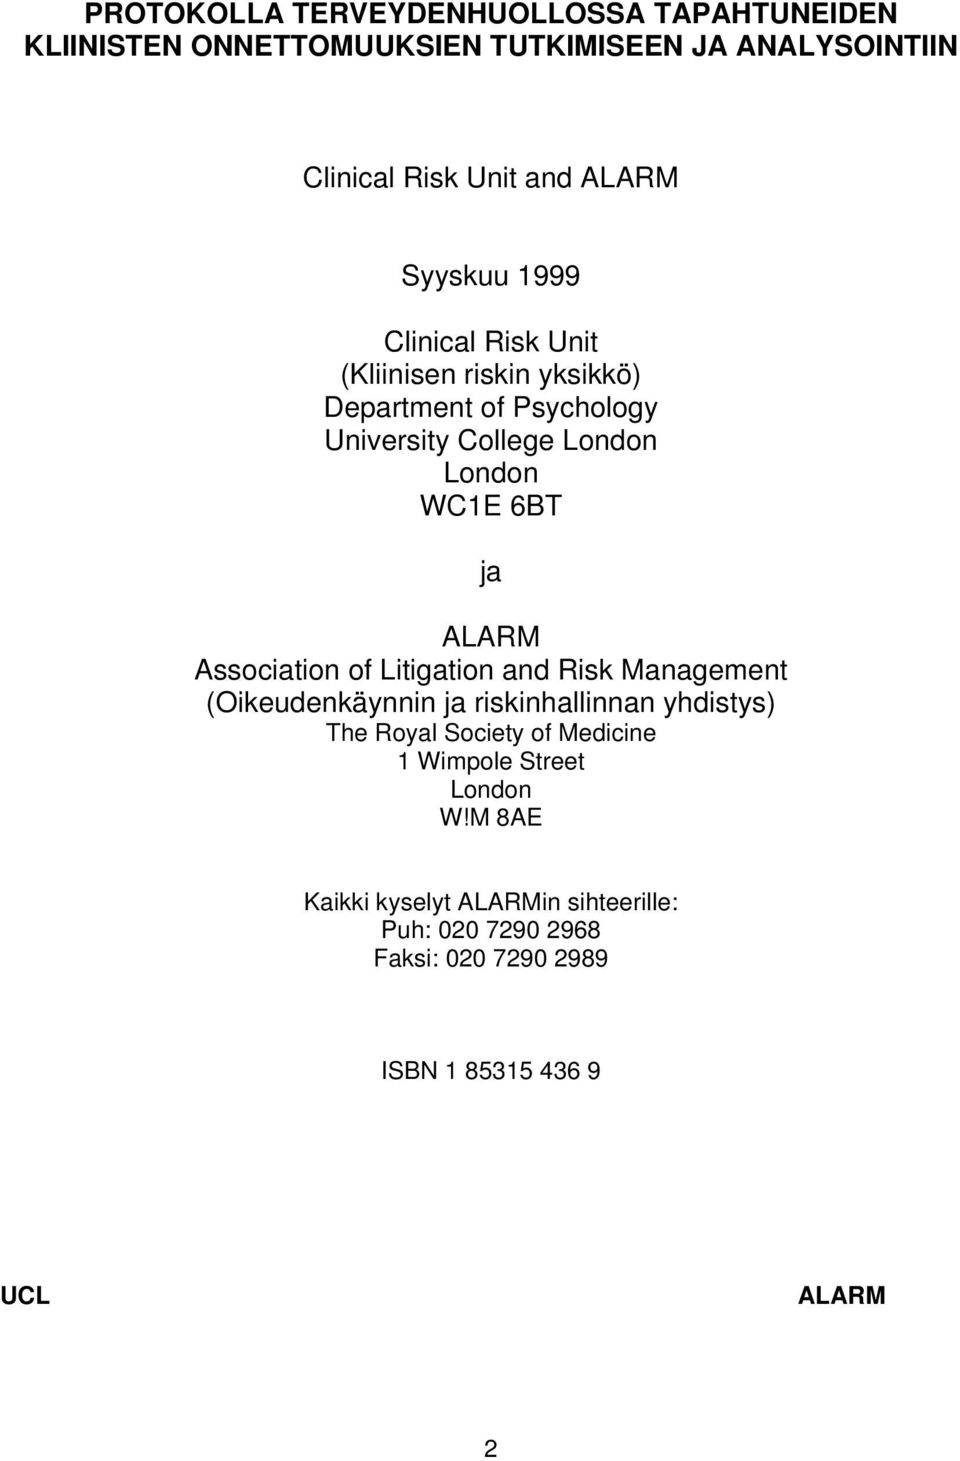 ALARM Association of Litigation and Risk Management (Oikeudenkäynnin ja riskinhallinnan yhdistys) The Royal Society of Medicine 1